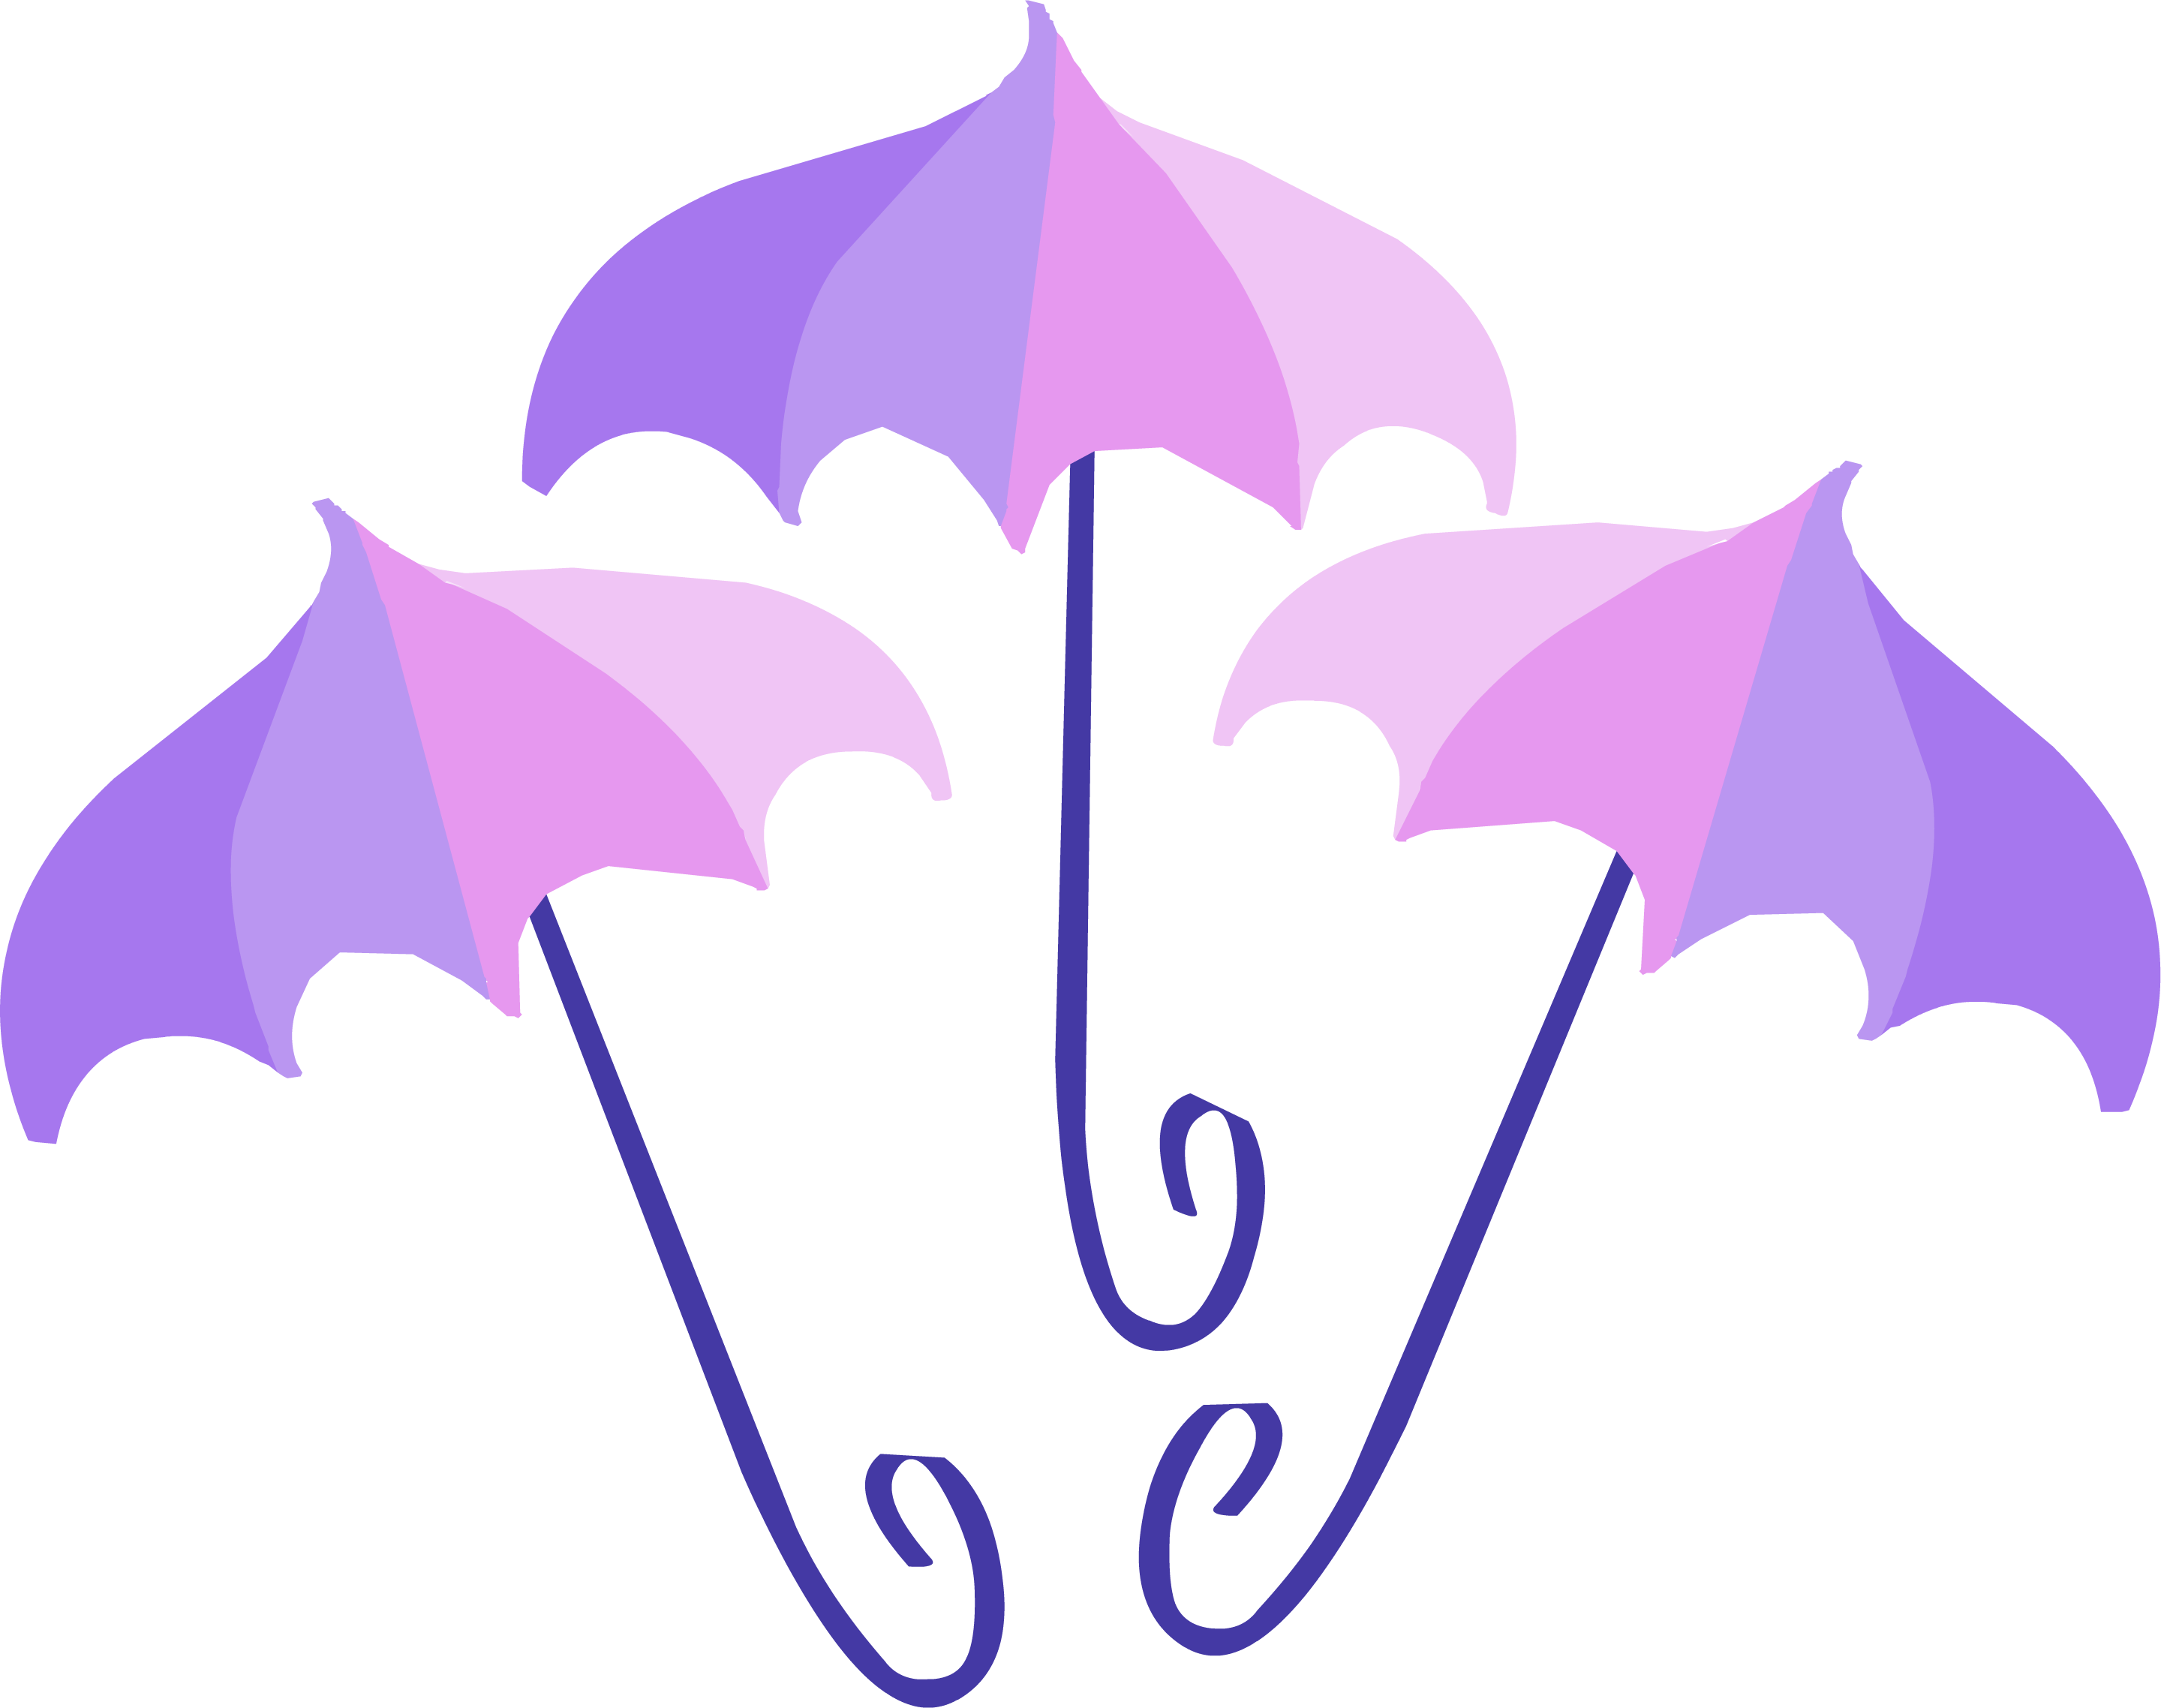 Collection of free drizzling. April clipart transparent